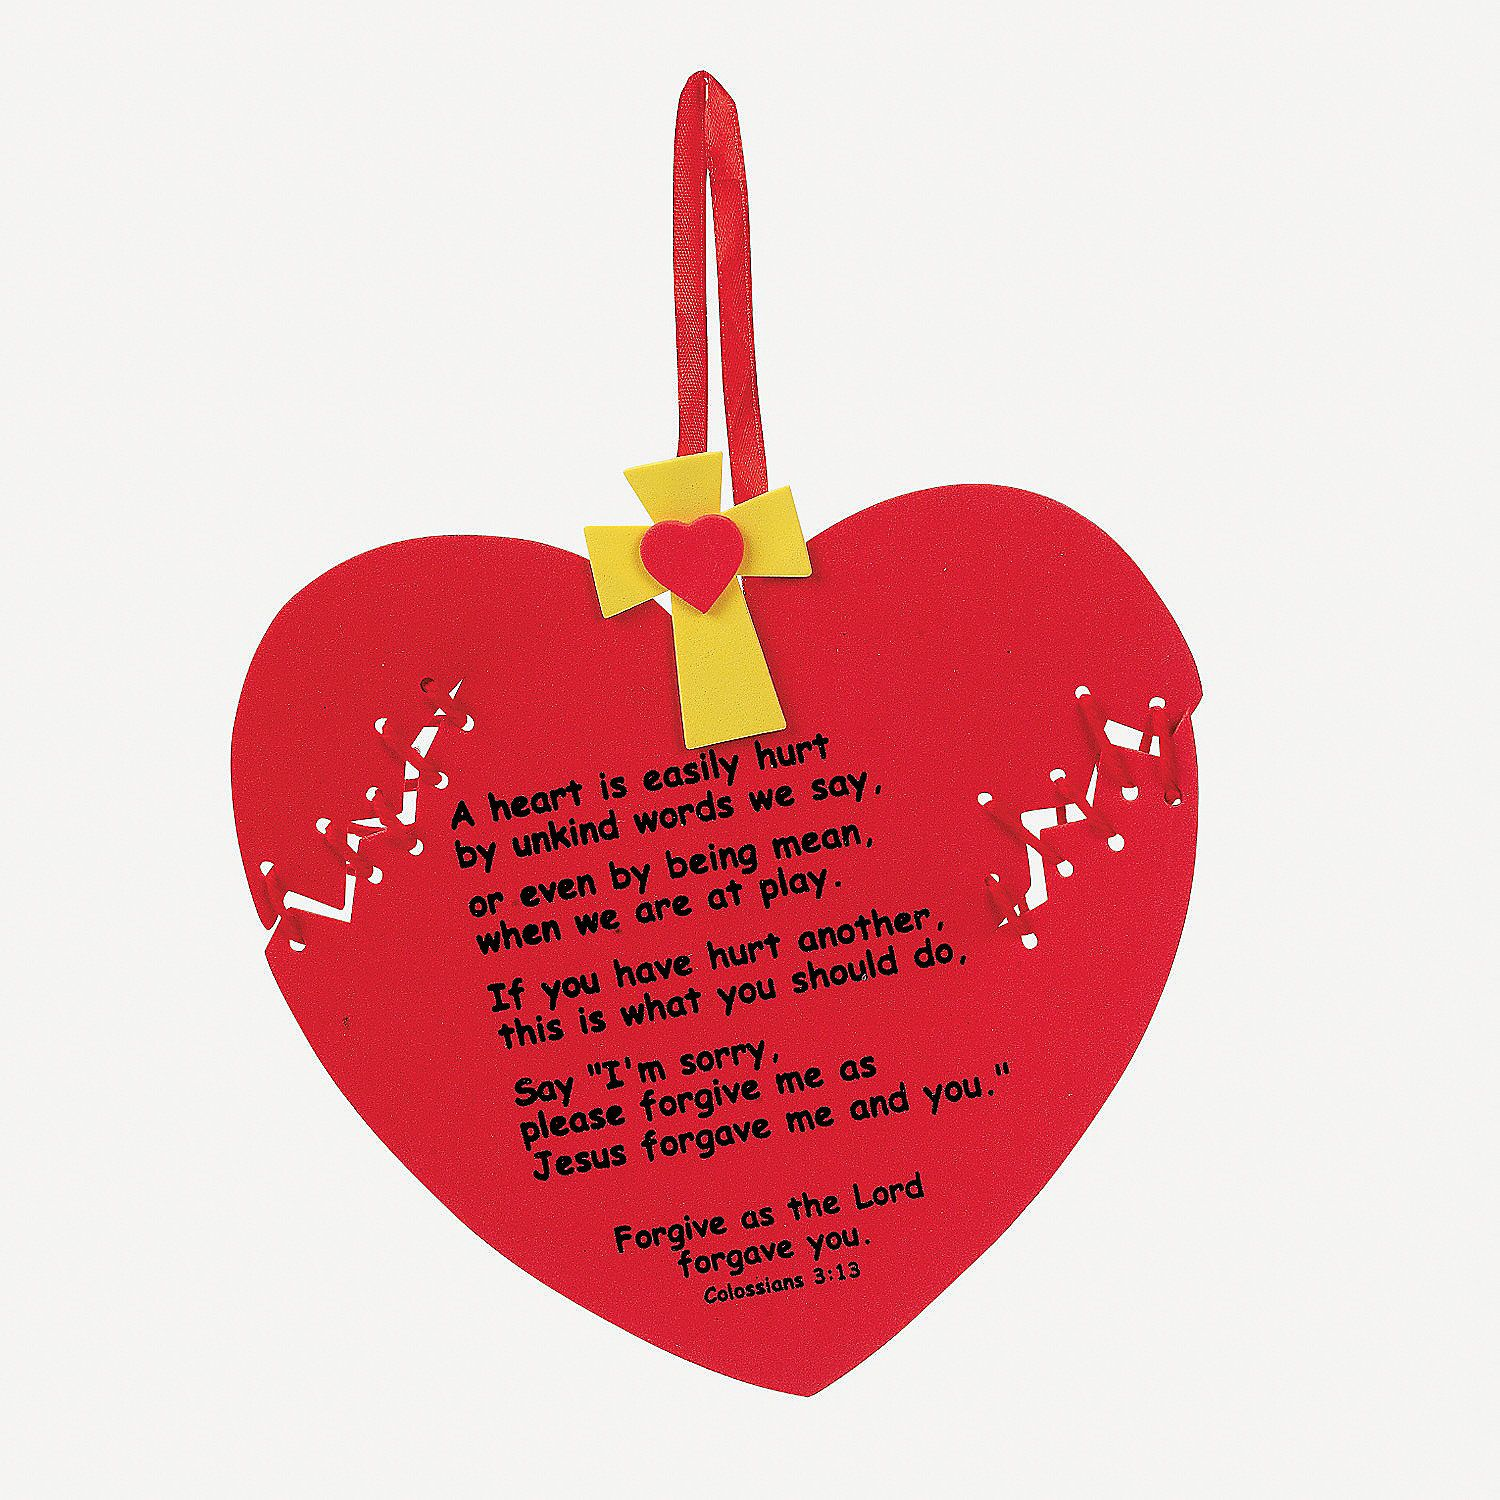 Forgiveness Heart Craft Kit Kit Discontinued From